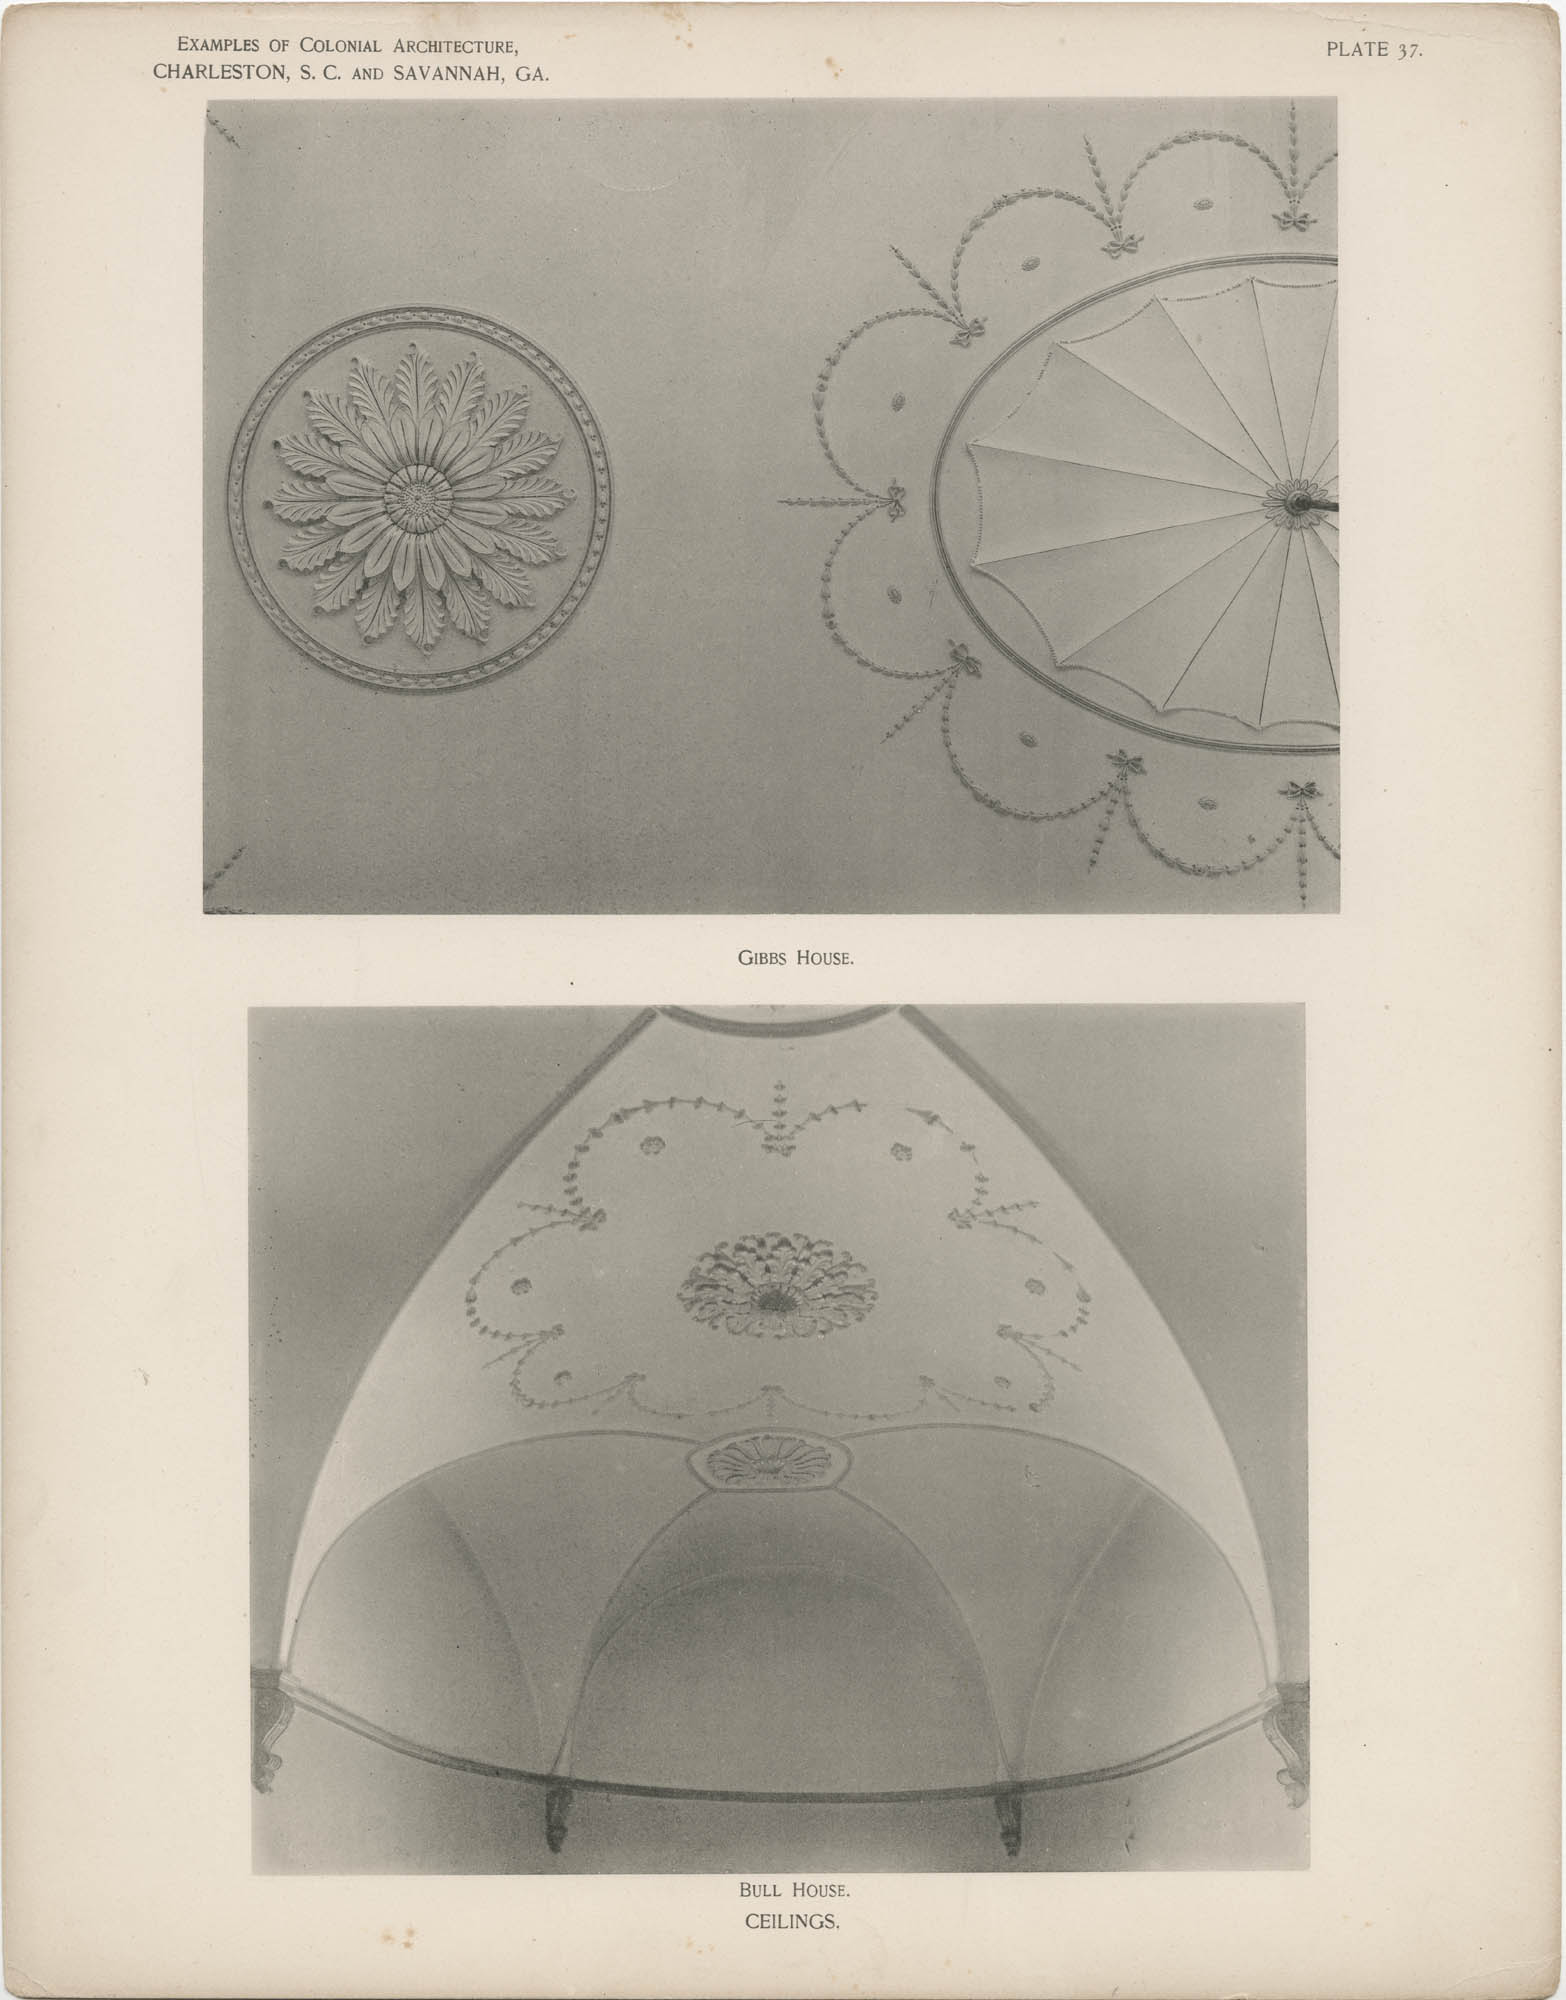 Plate 37: Ceilings, Gibbs [sic] and Bull Houses